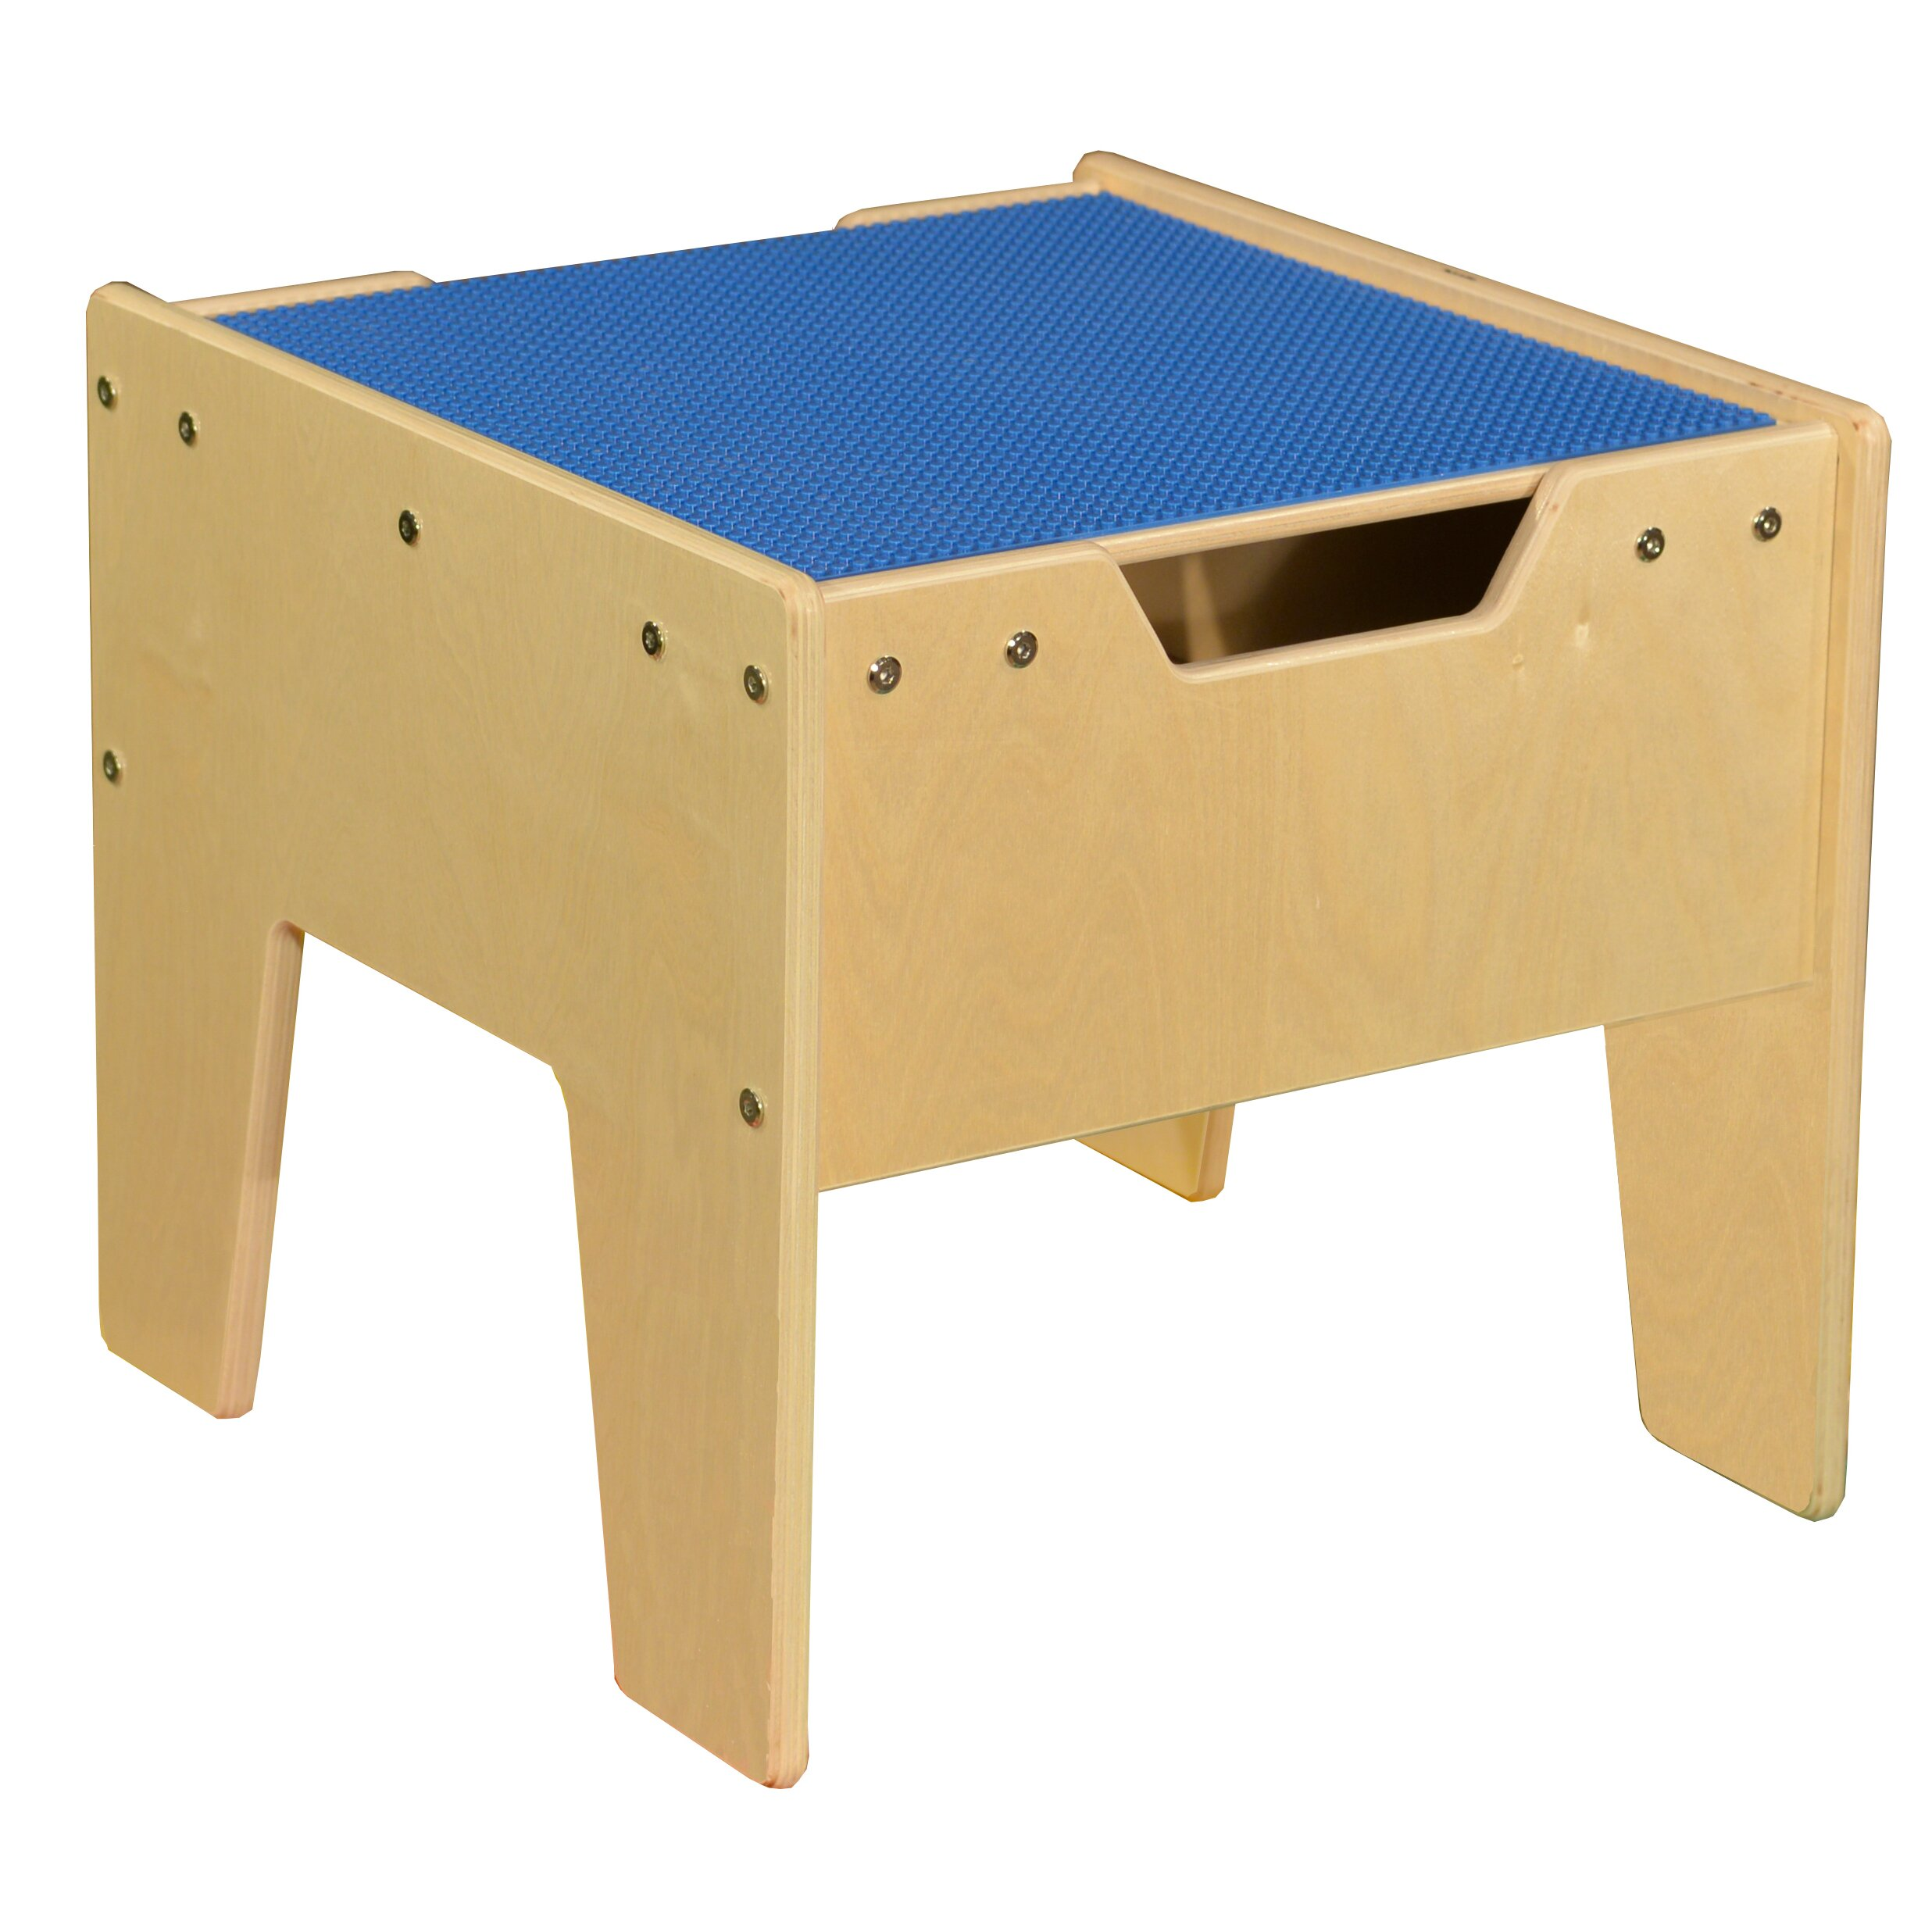 Contender Kids Rectangle Lego Table & Reviews